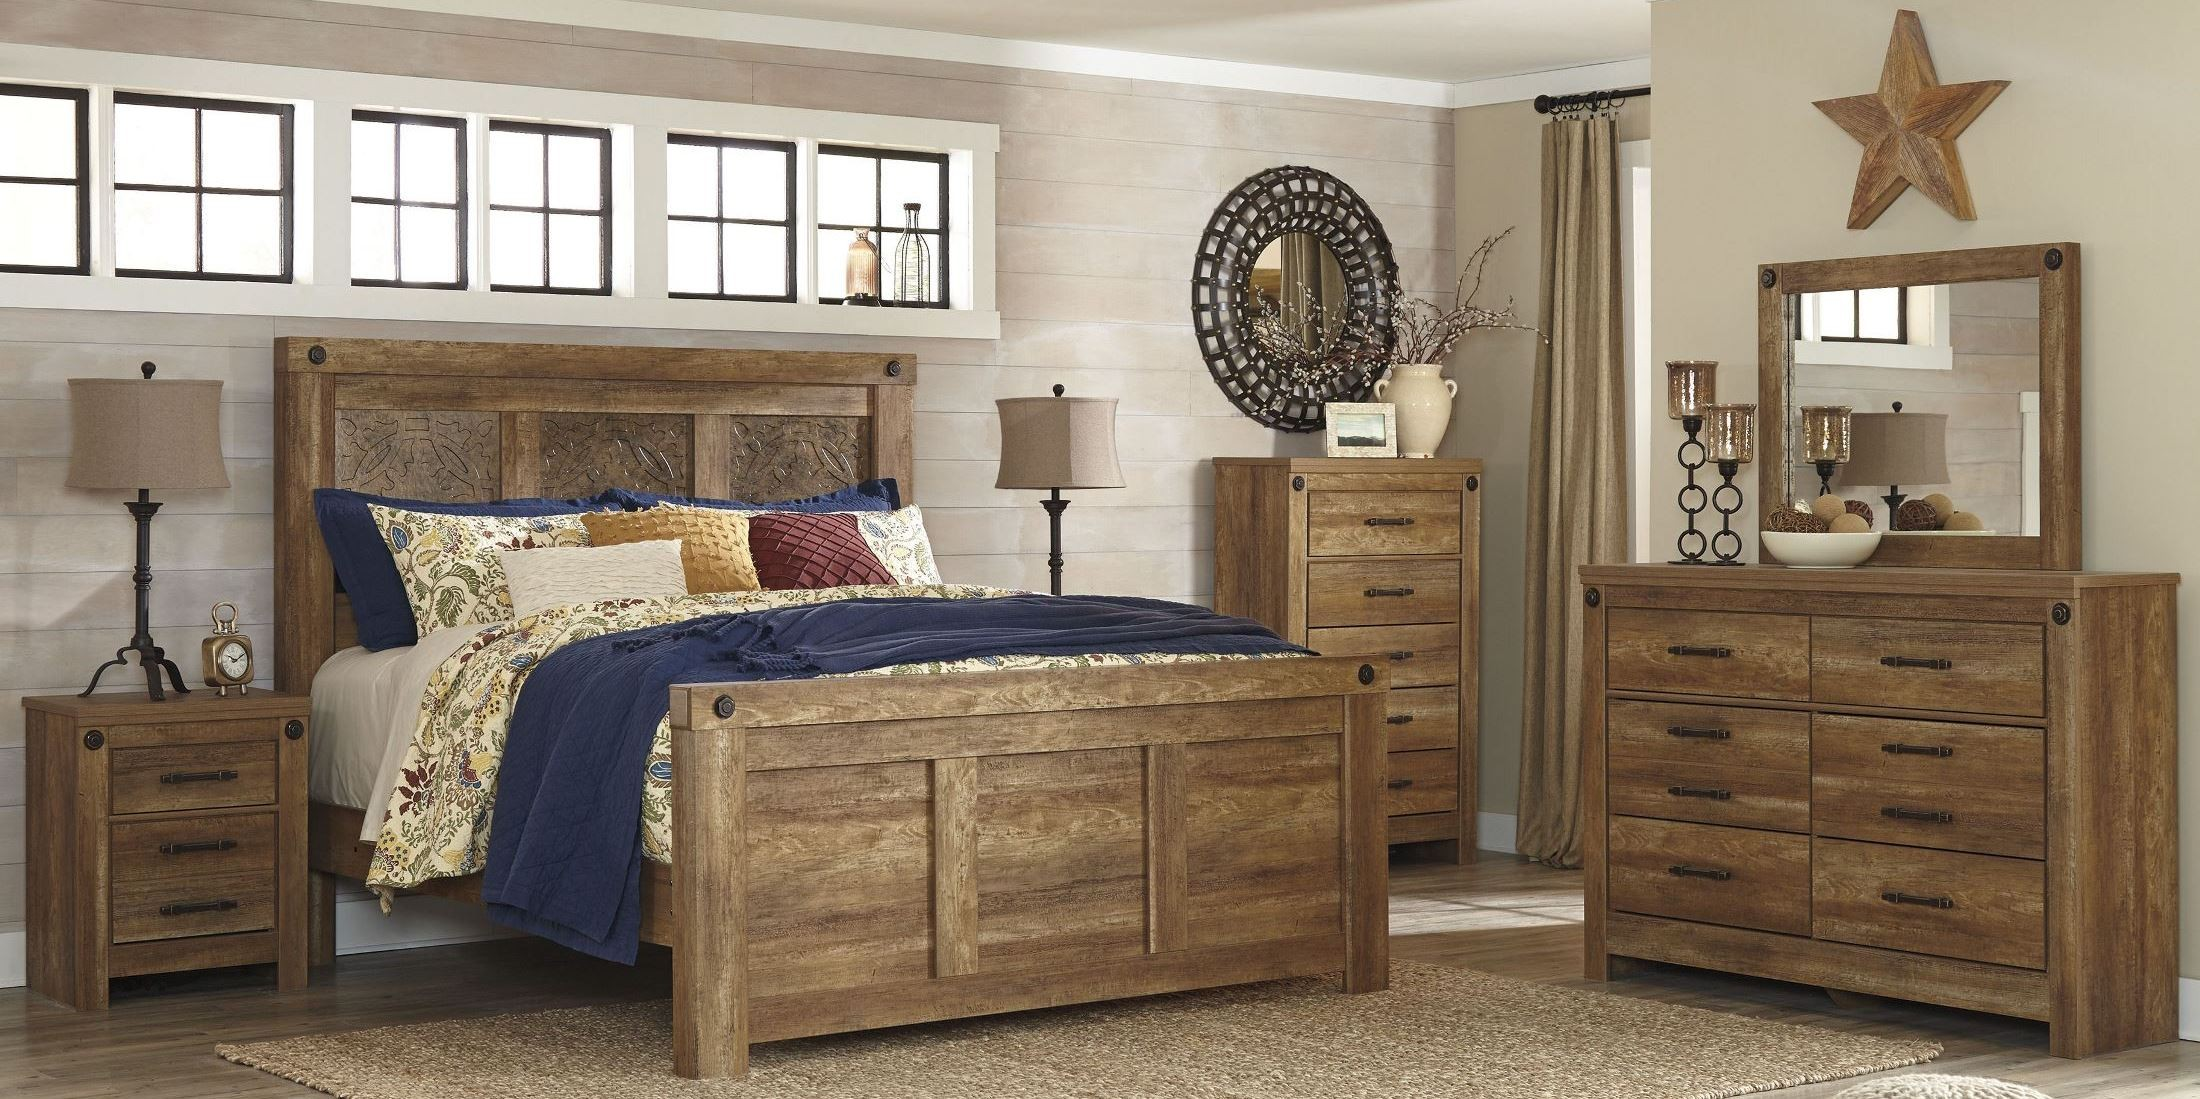 Ladimier Golden Brown Mansion Bedroom Set, B399-54-57-98